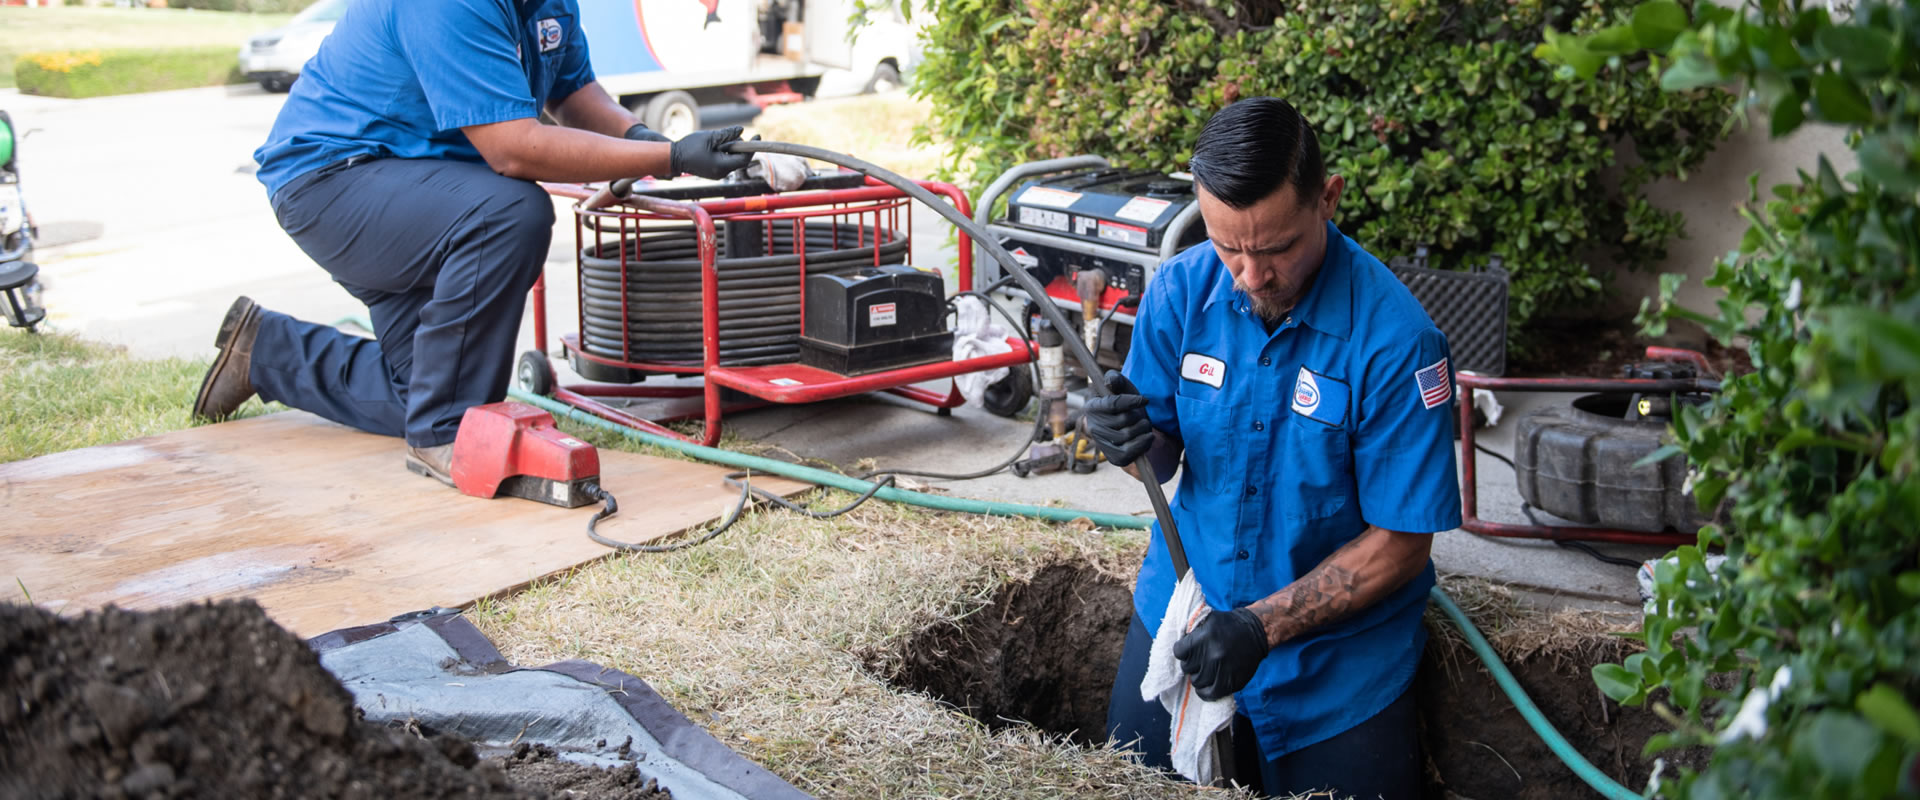 Trenchless Sewer Repair in Livermore, CA